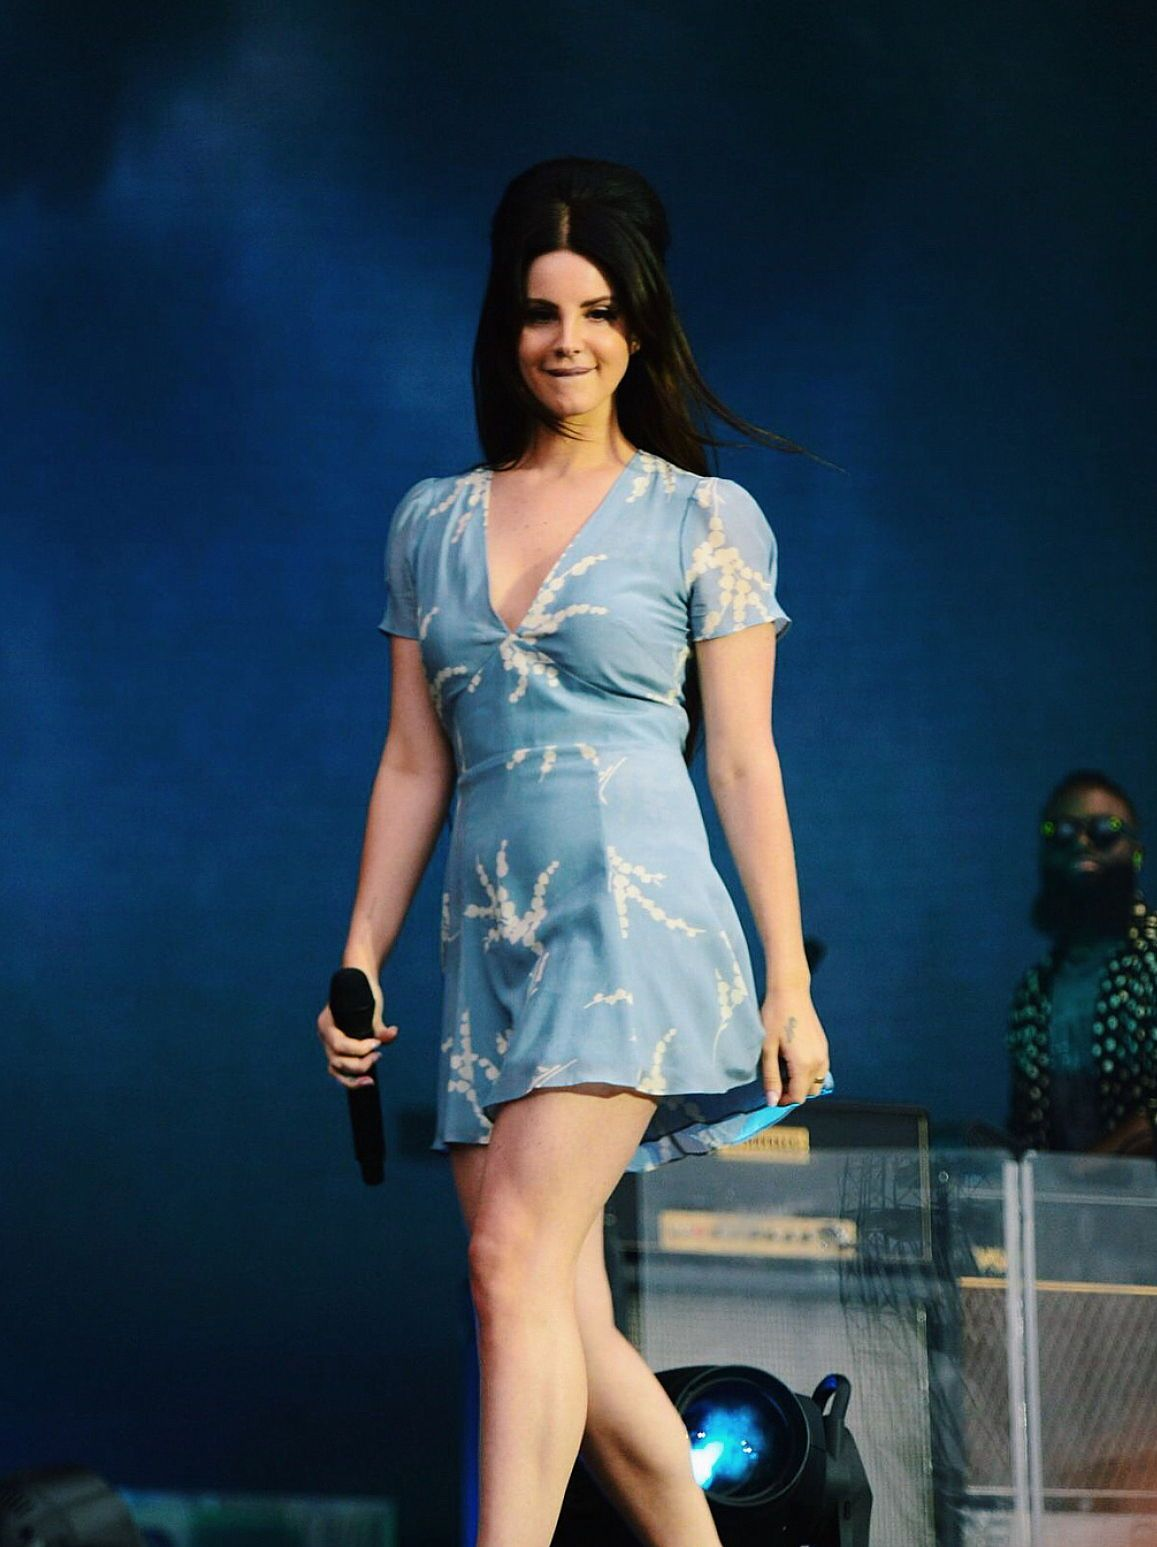 Lana Del Rey On Stage Wearing A Beautiful Blue Summer Mini Dress Lanadelrey Lana Del Rey Faldas Cortas Faldas